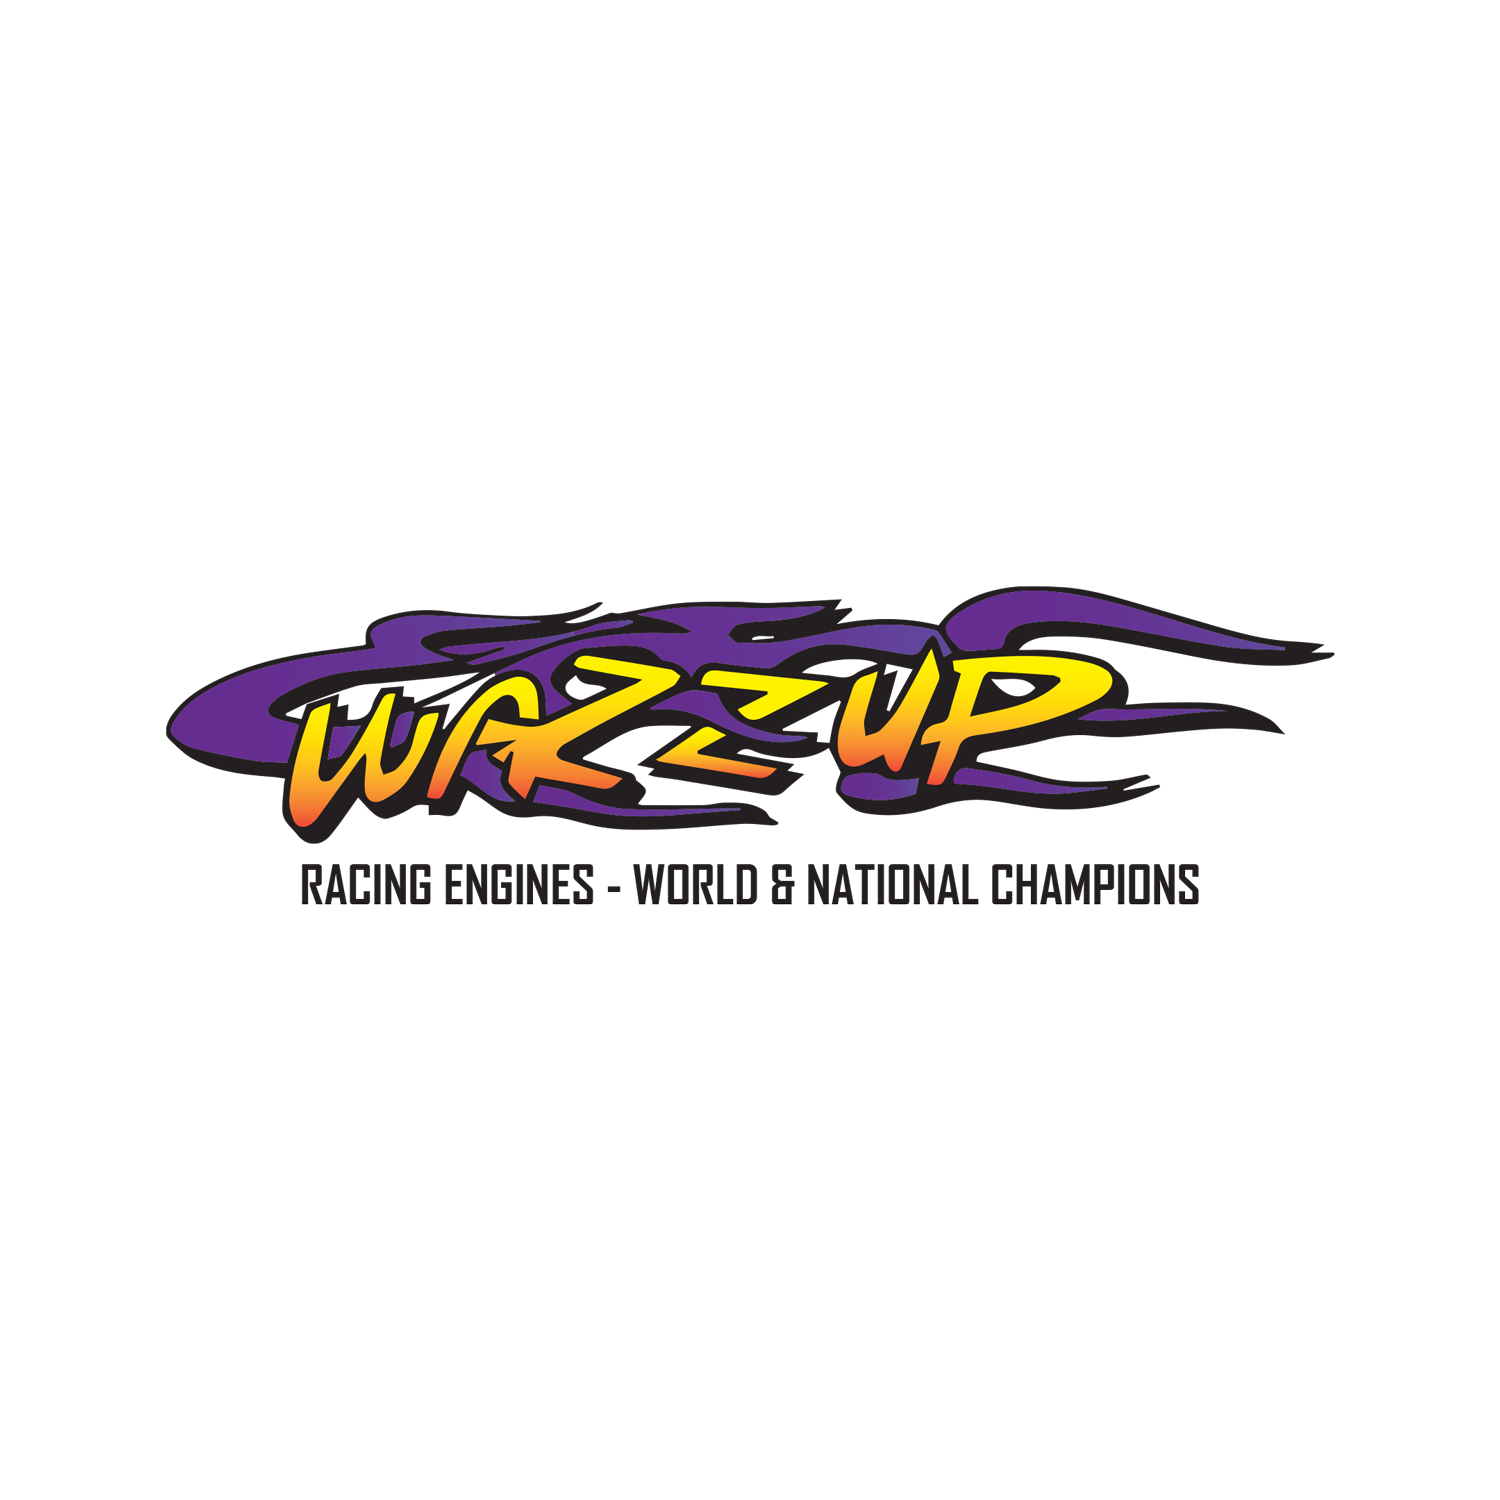 WAZZUP-racing-engines.png